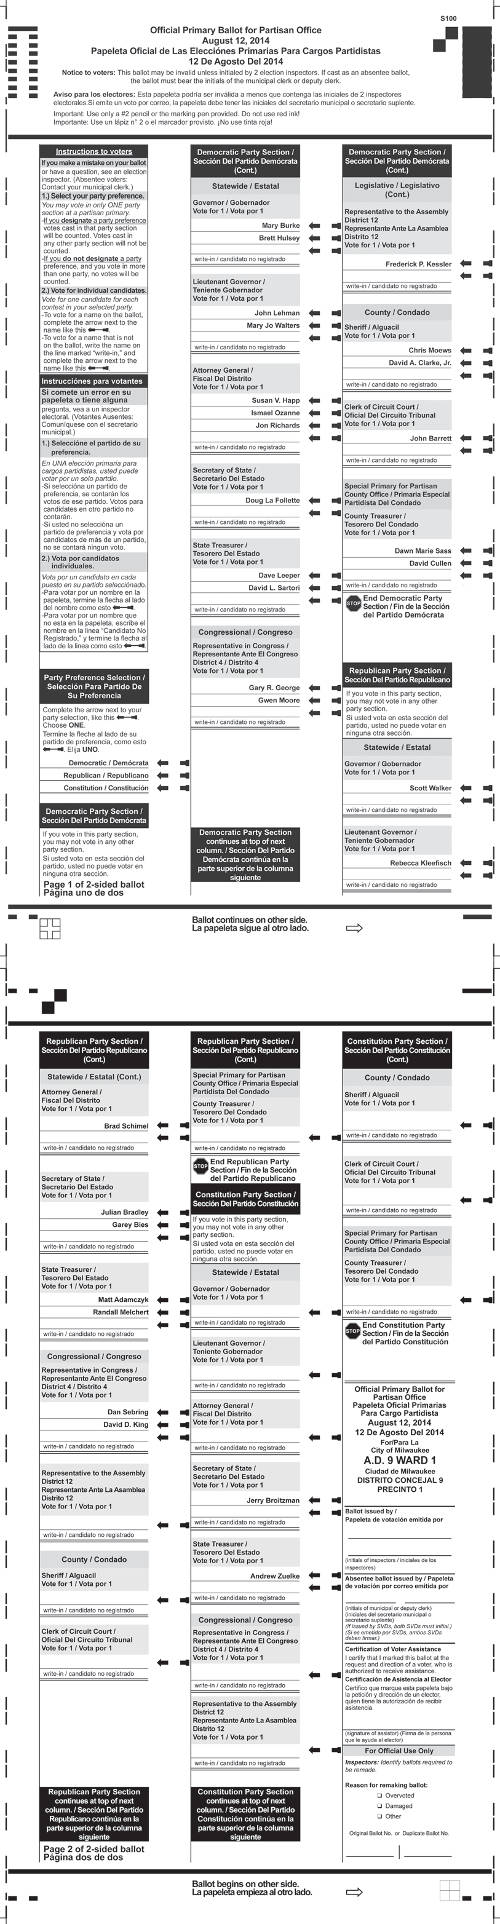 primary-election-partison-office-milwaukee-county-sample-ballot-optical-scan-august-12-2014